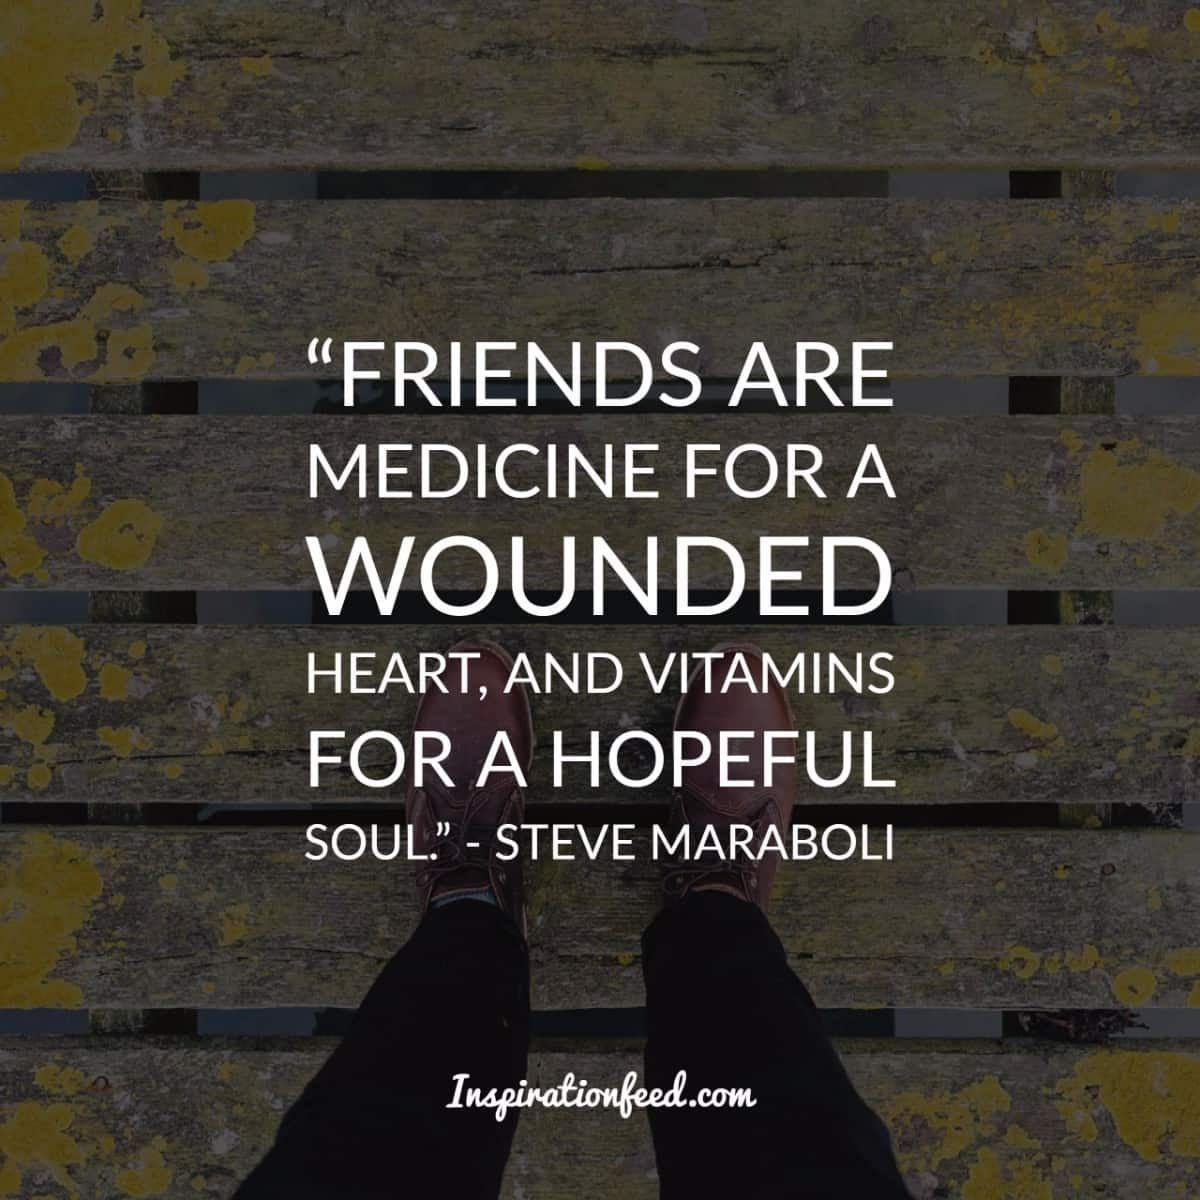 Friendship Quotes To Celebrate Your Friends Friendship Quotes Funny True Inspirational Best Friend Quotes Meaningful Friends Quotes Friends Quotes Funny